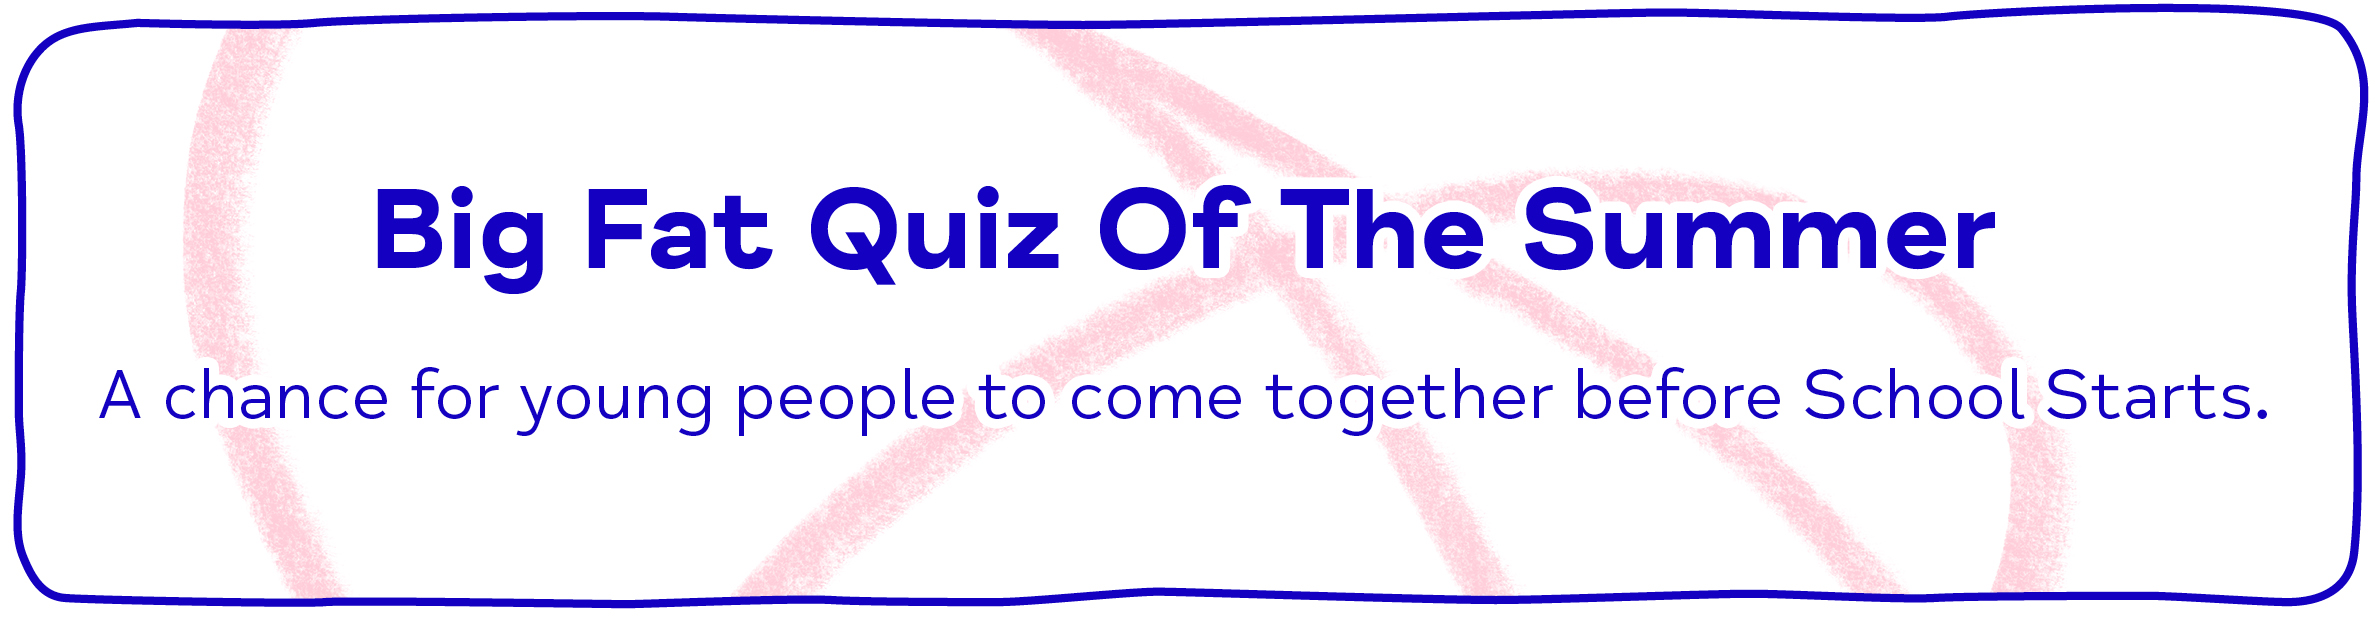 Big Fat Quiz Of The Summer A chance for young people to come together before School Starts.